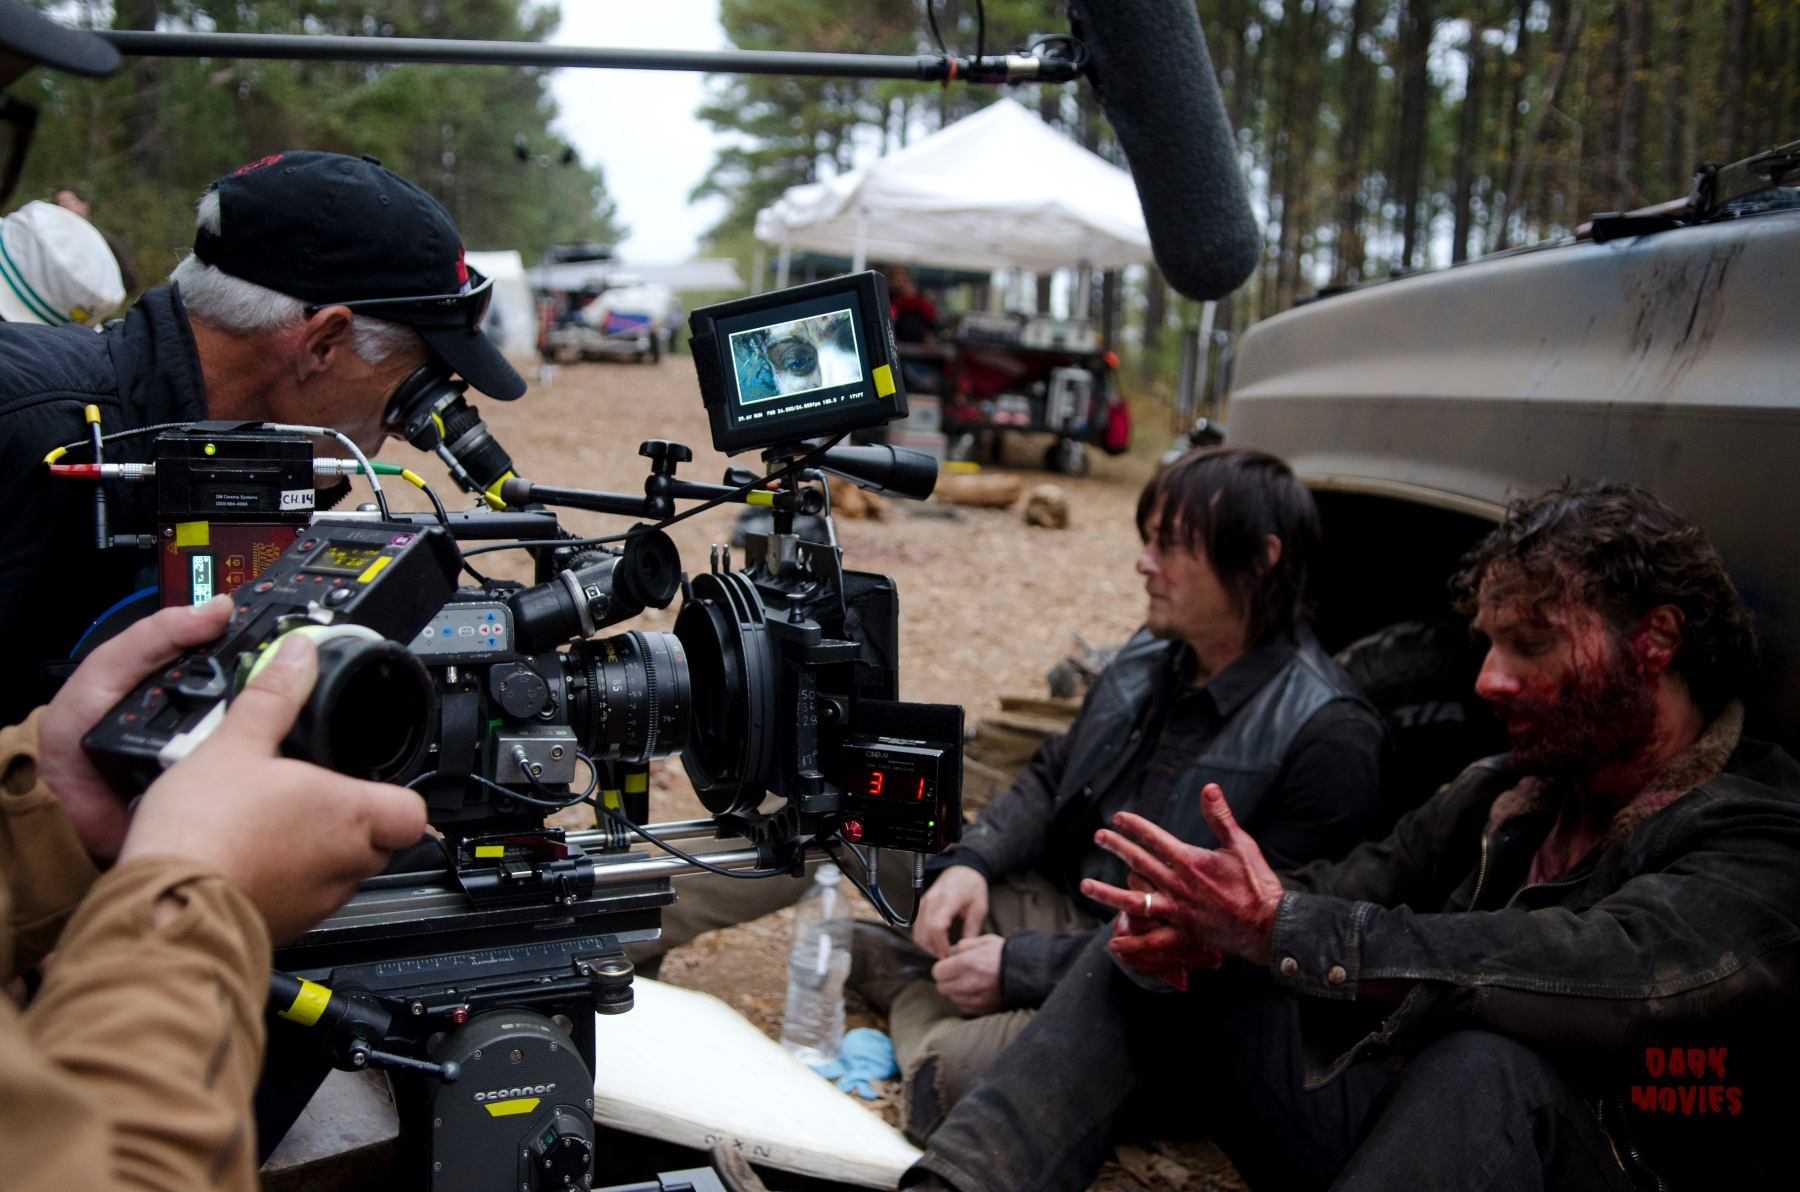 Norman Reedus and Andrew Lincoln - The Walking Dead _ BTS - Season 4, Episode 16 - Photo Credit: Gene Page/AMC